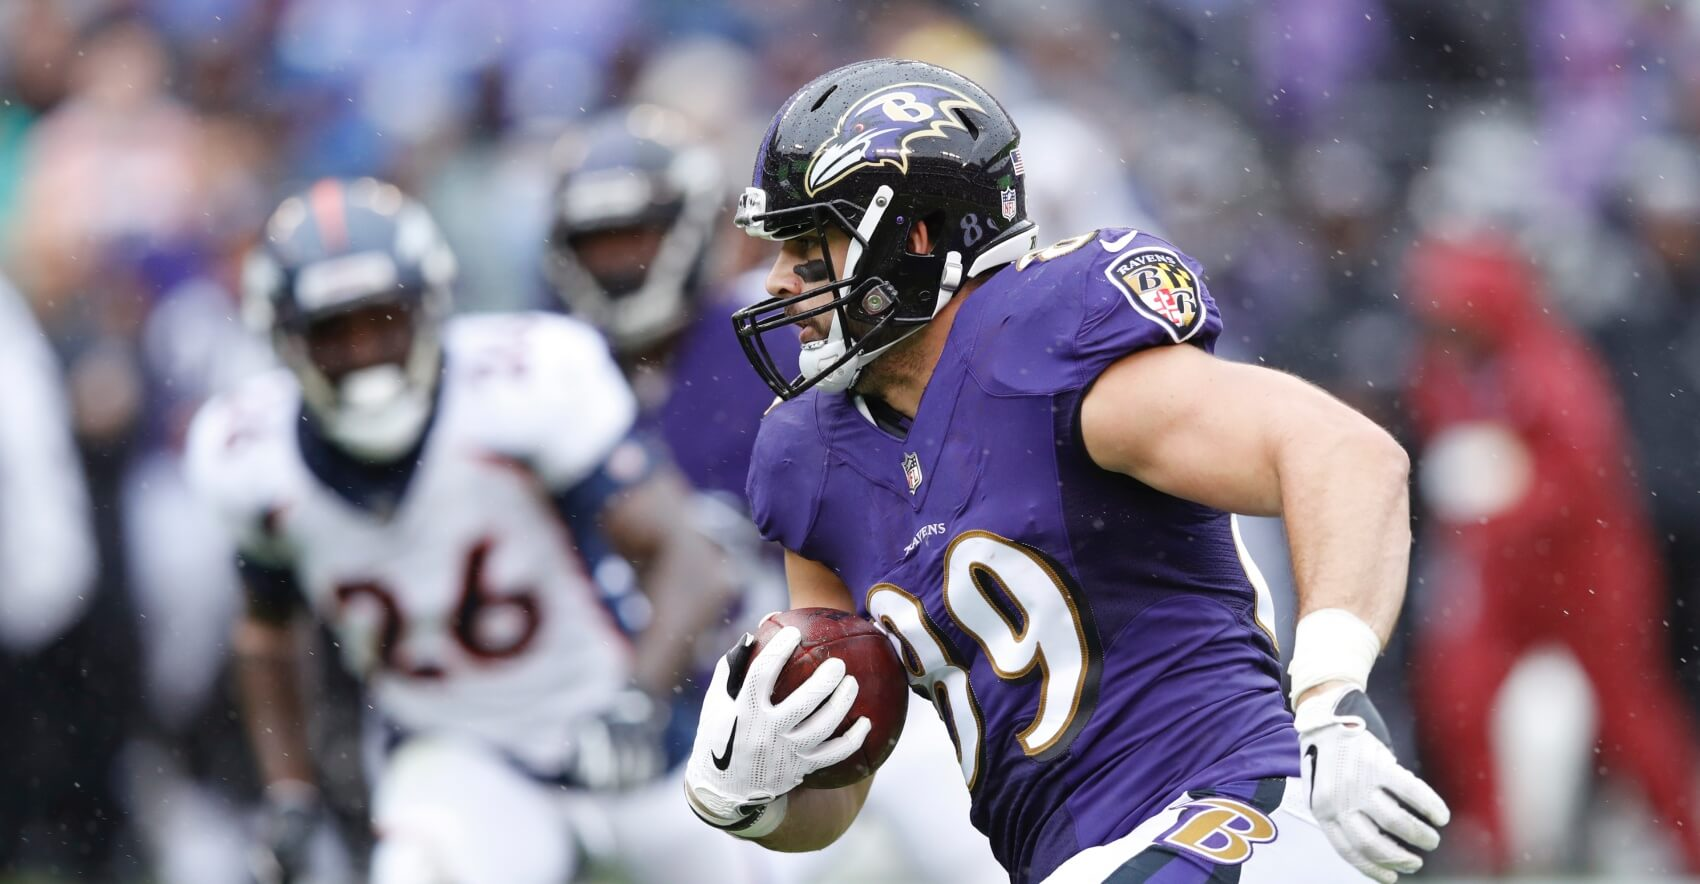 Fantasy Footballers Podcast Recap: The TRUTH About Tight Ends in 2019